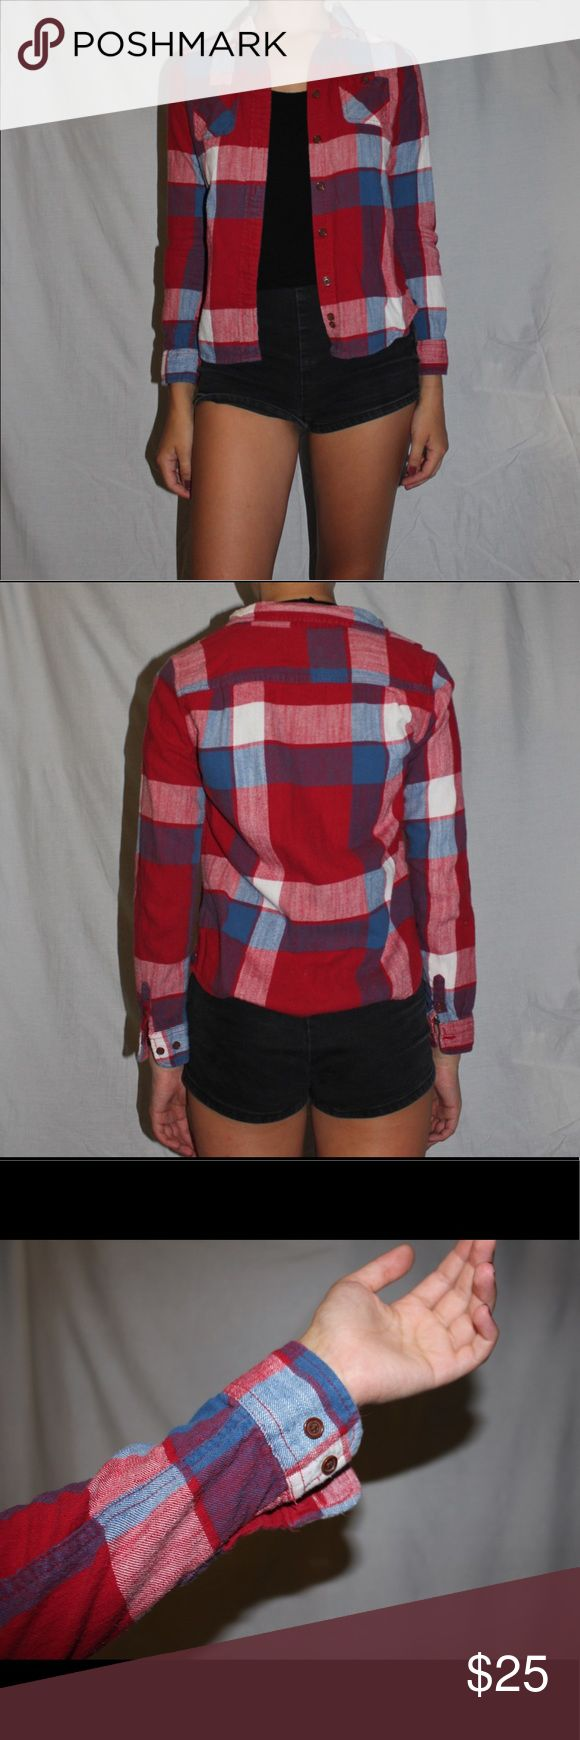 Red White & Blue American Eagle Flannel Red, white, and blue flannel from American Eagle Outfitters. All buttons intact, extra button on tag. 100% cotton, Size 4. Model Measurements: Height: 5'7; Weight: 135 pounds; Bust: 34 inches; Waist: 27 inches; Hips: 32 inches American Eagle Outfitters Tops Button Down Shirts